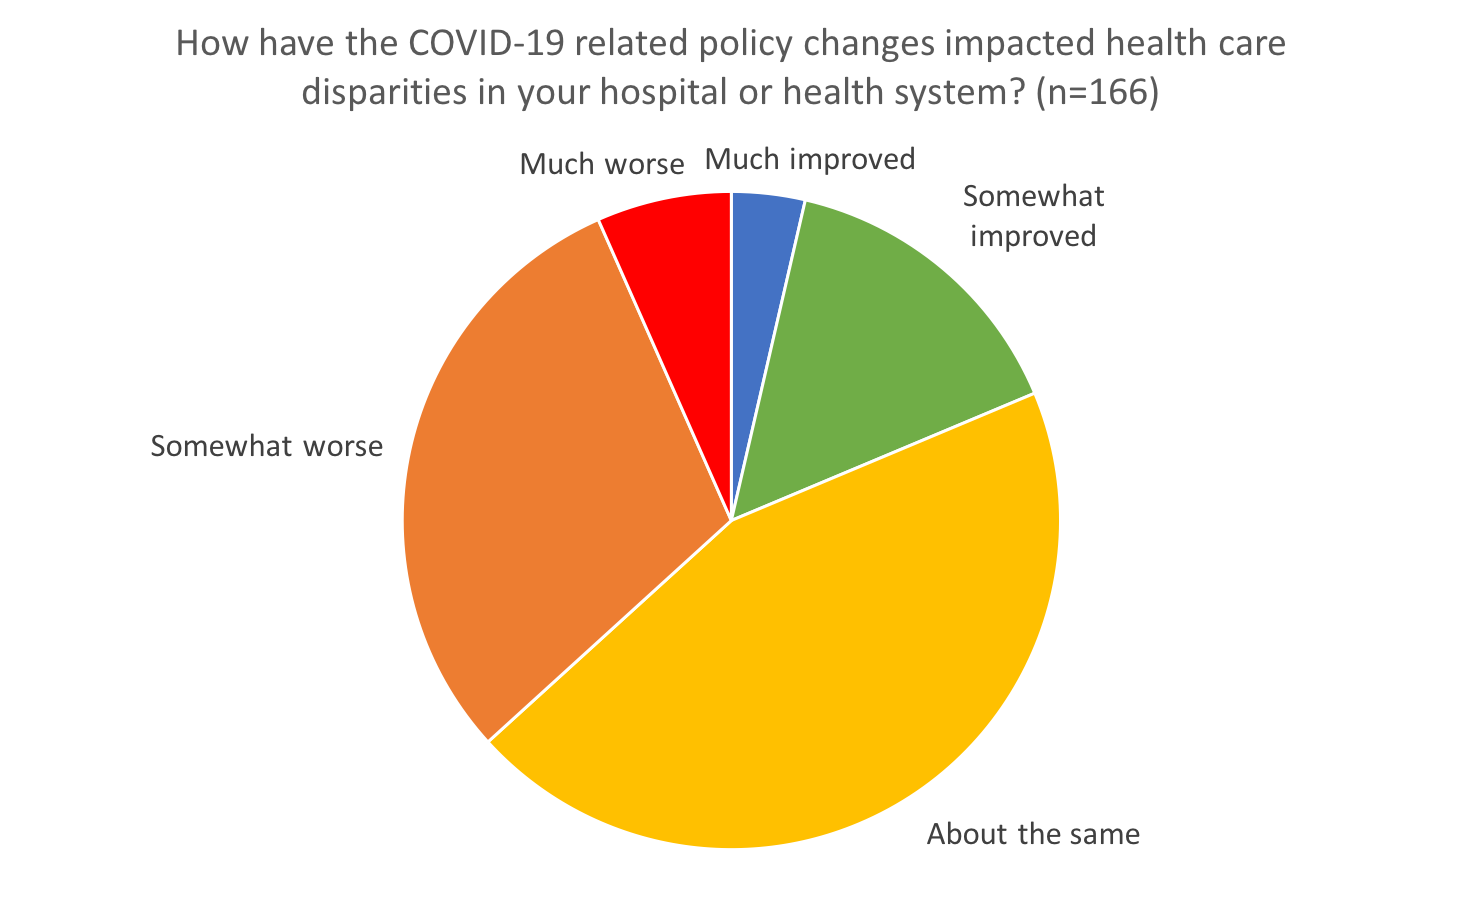 How have the COVID-19 related policy changes impacted health care disparities in your hospital or health system?